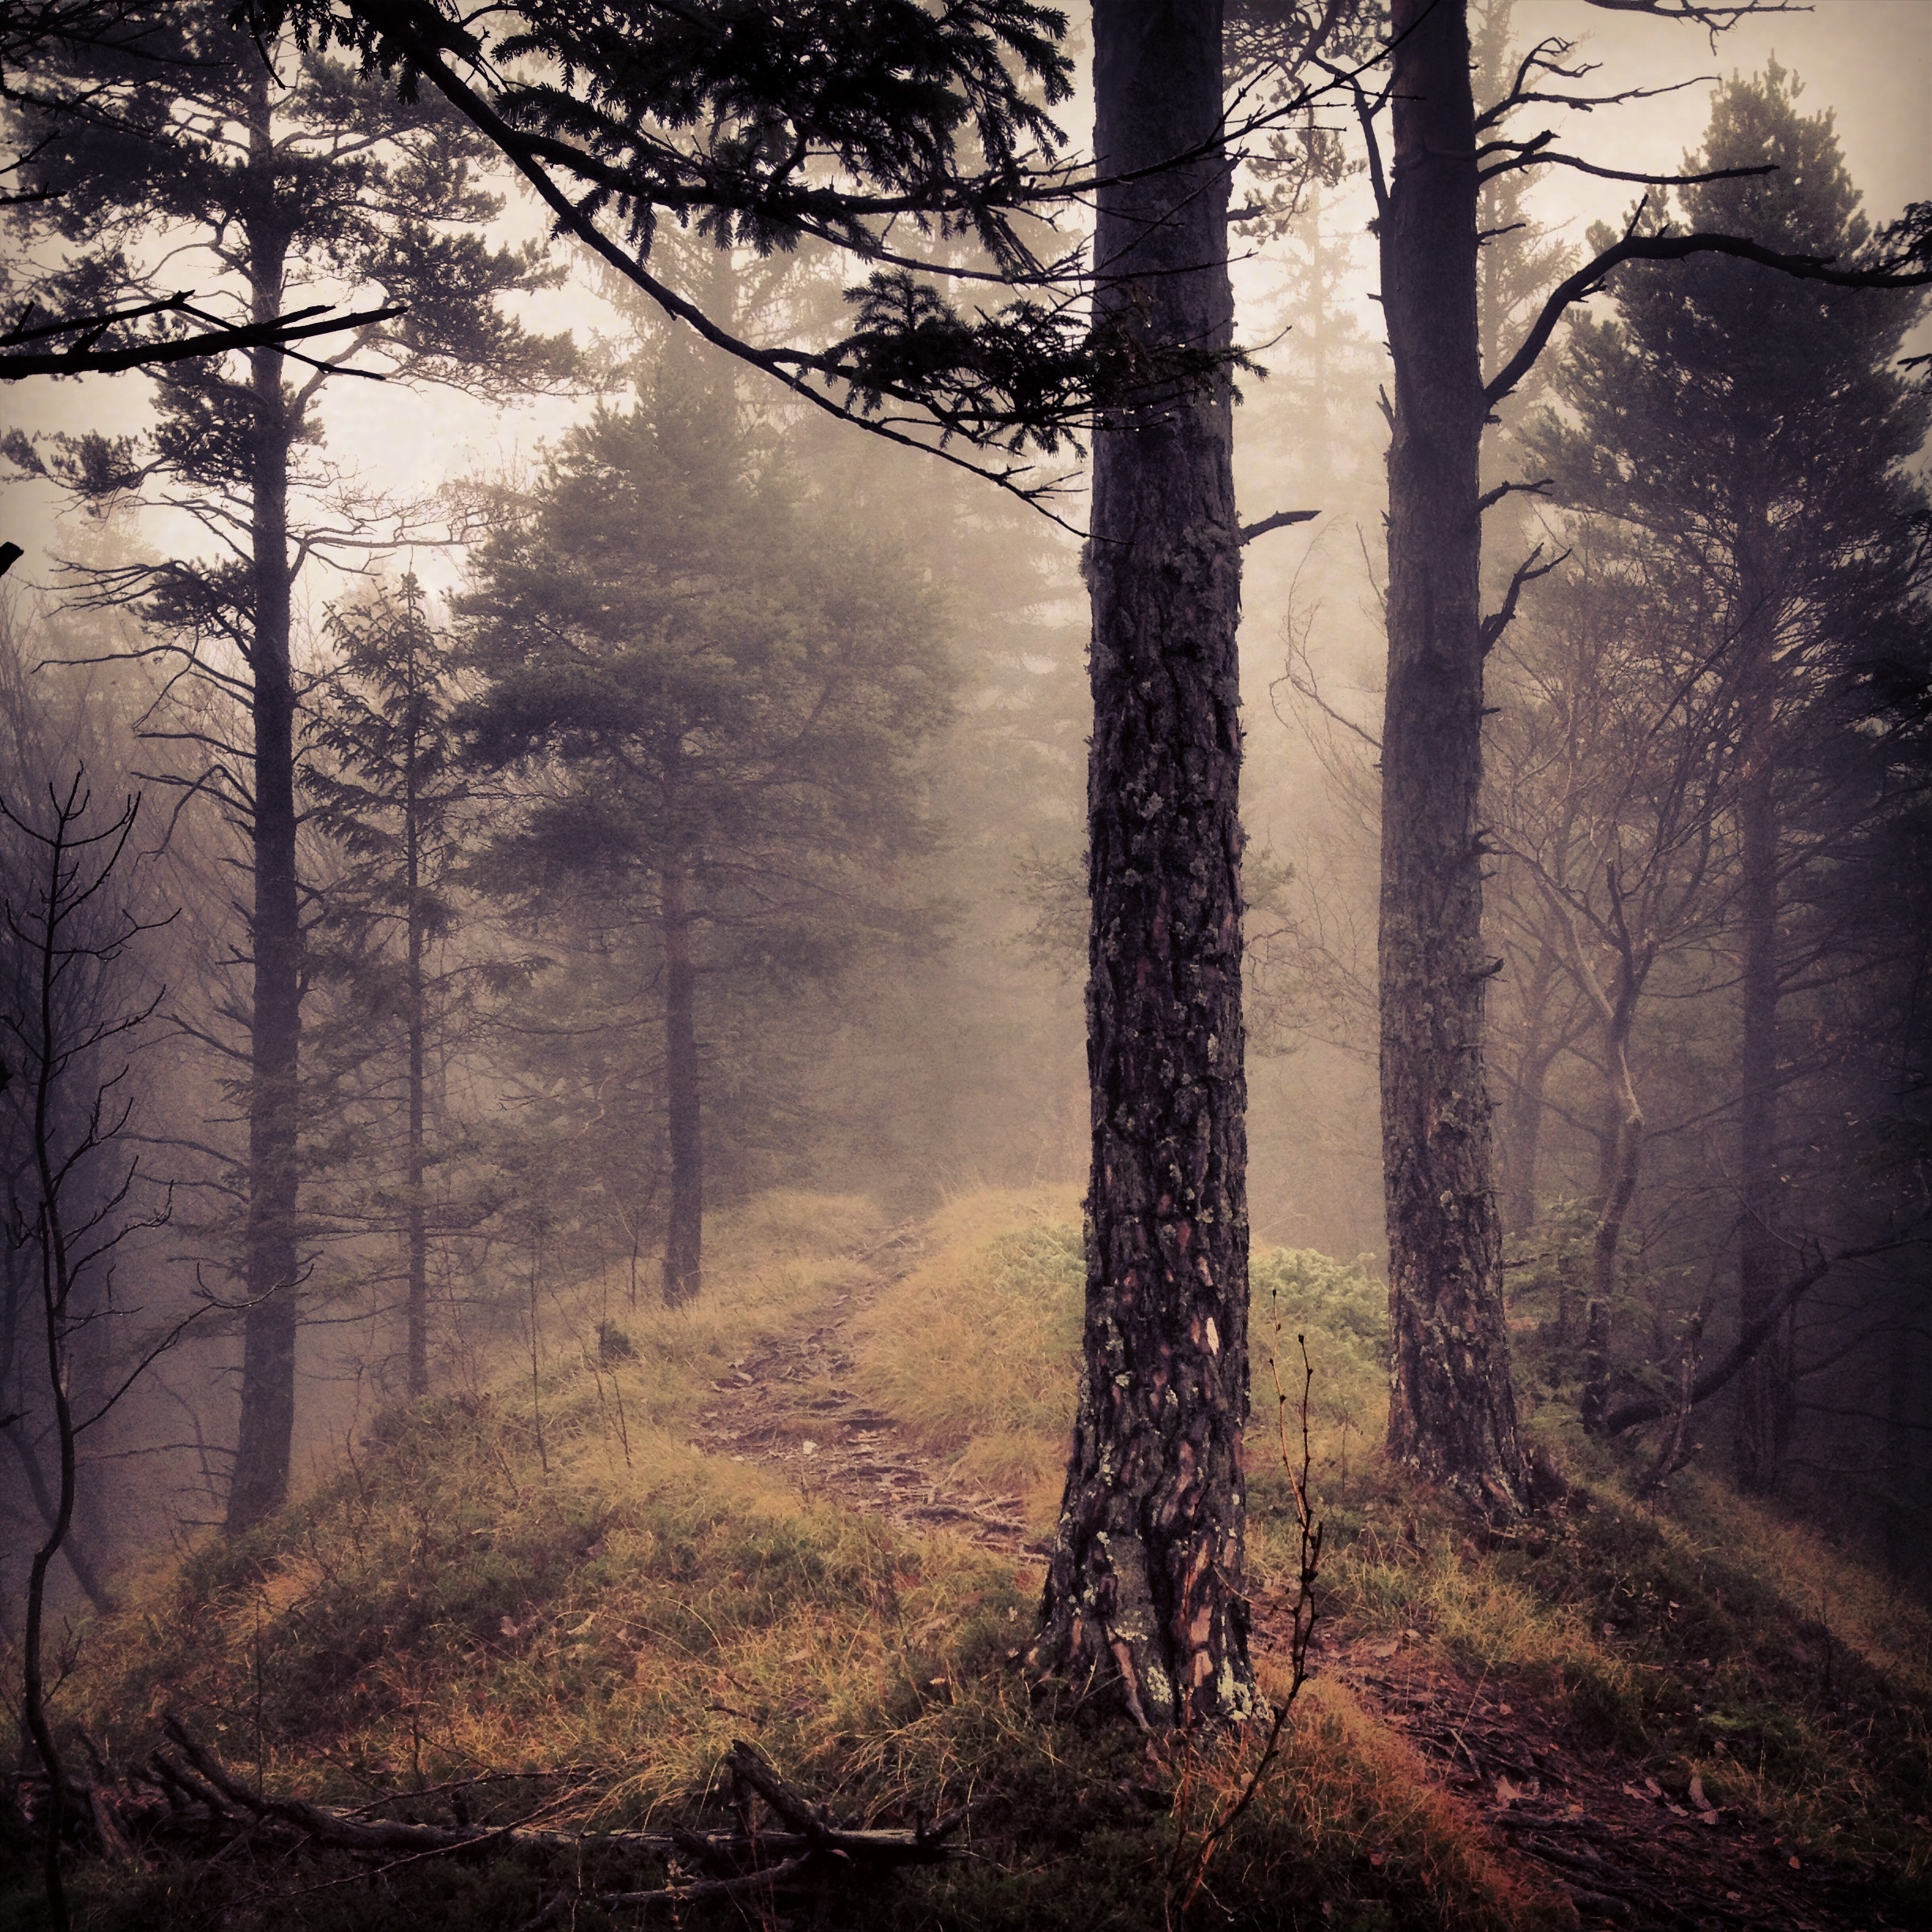 Into the wild, Wood, Woods, Wild, Forest, HQ Photo